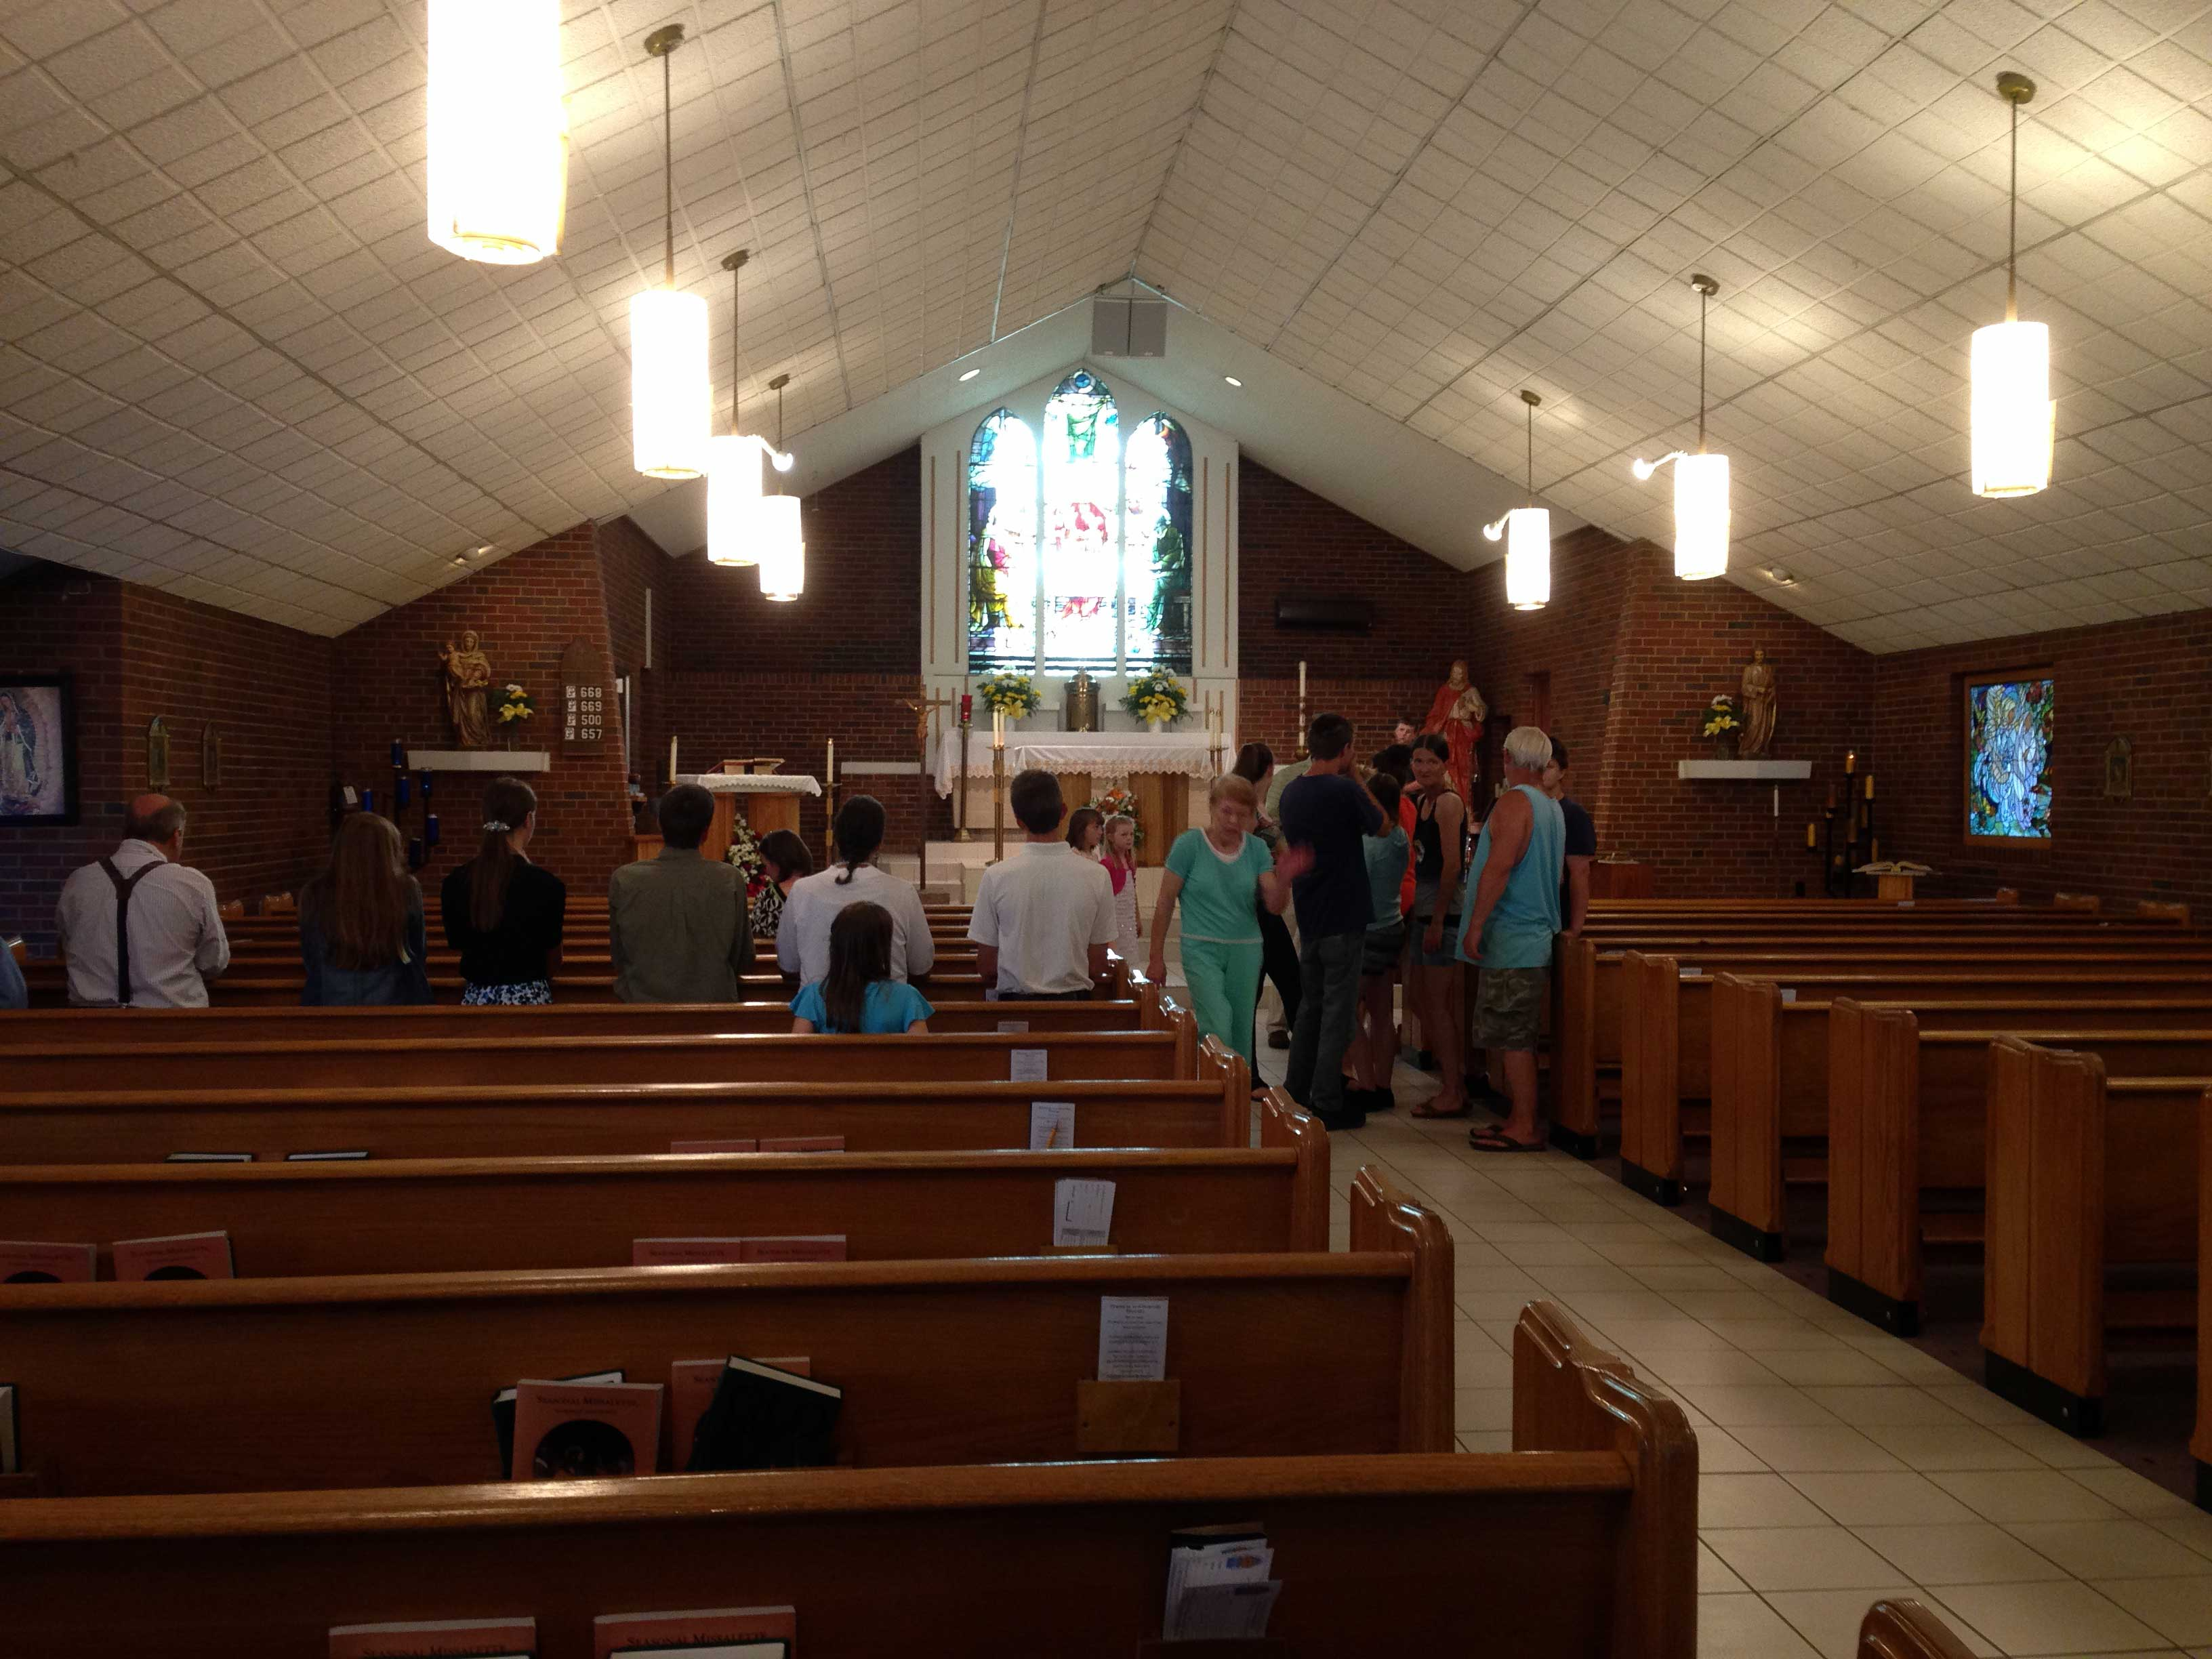 INTERIOR—A view inside Scared Heart, Salem, after Mass, June 11, 2016. (Photo by Glenn Eckl)